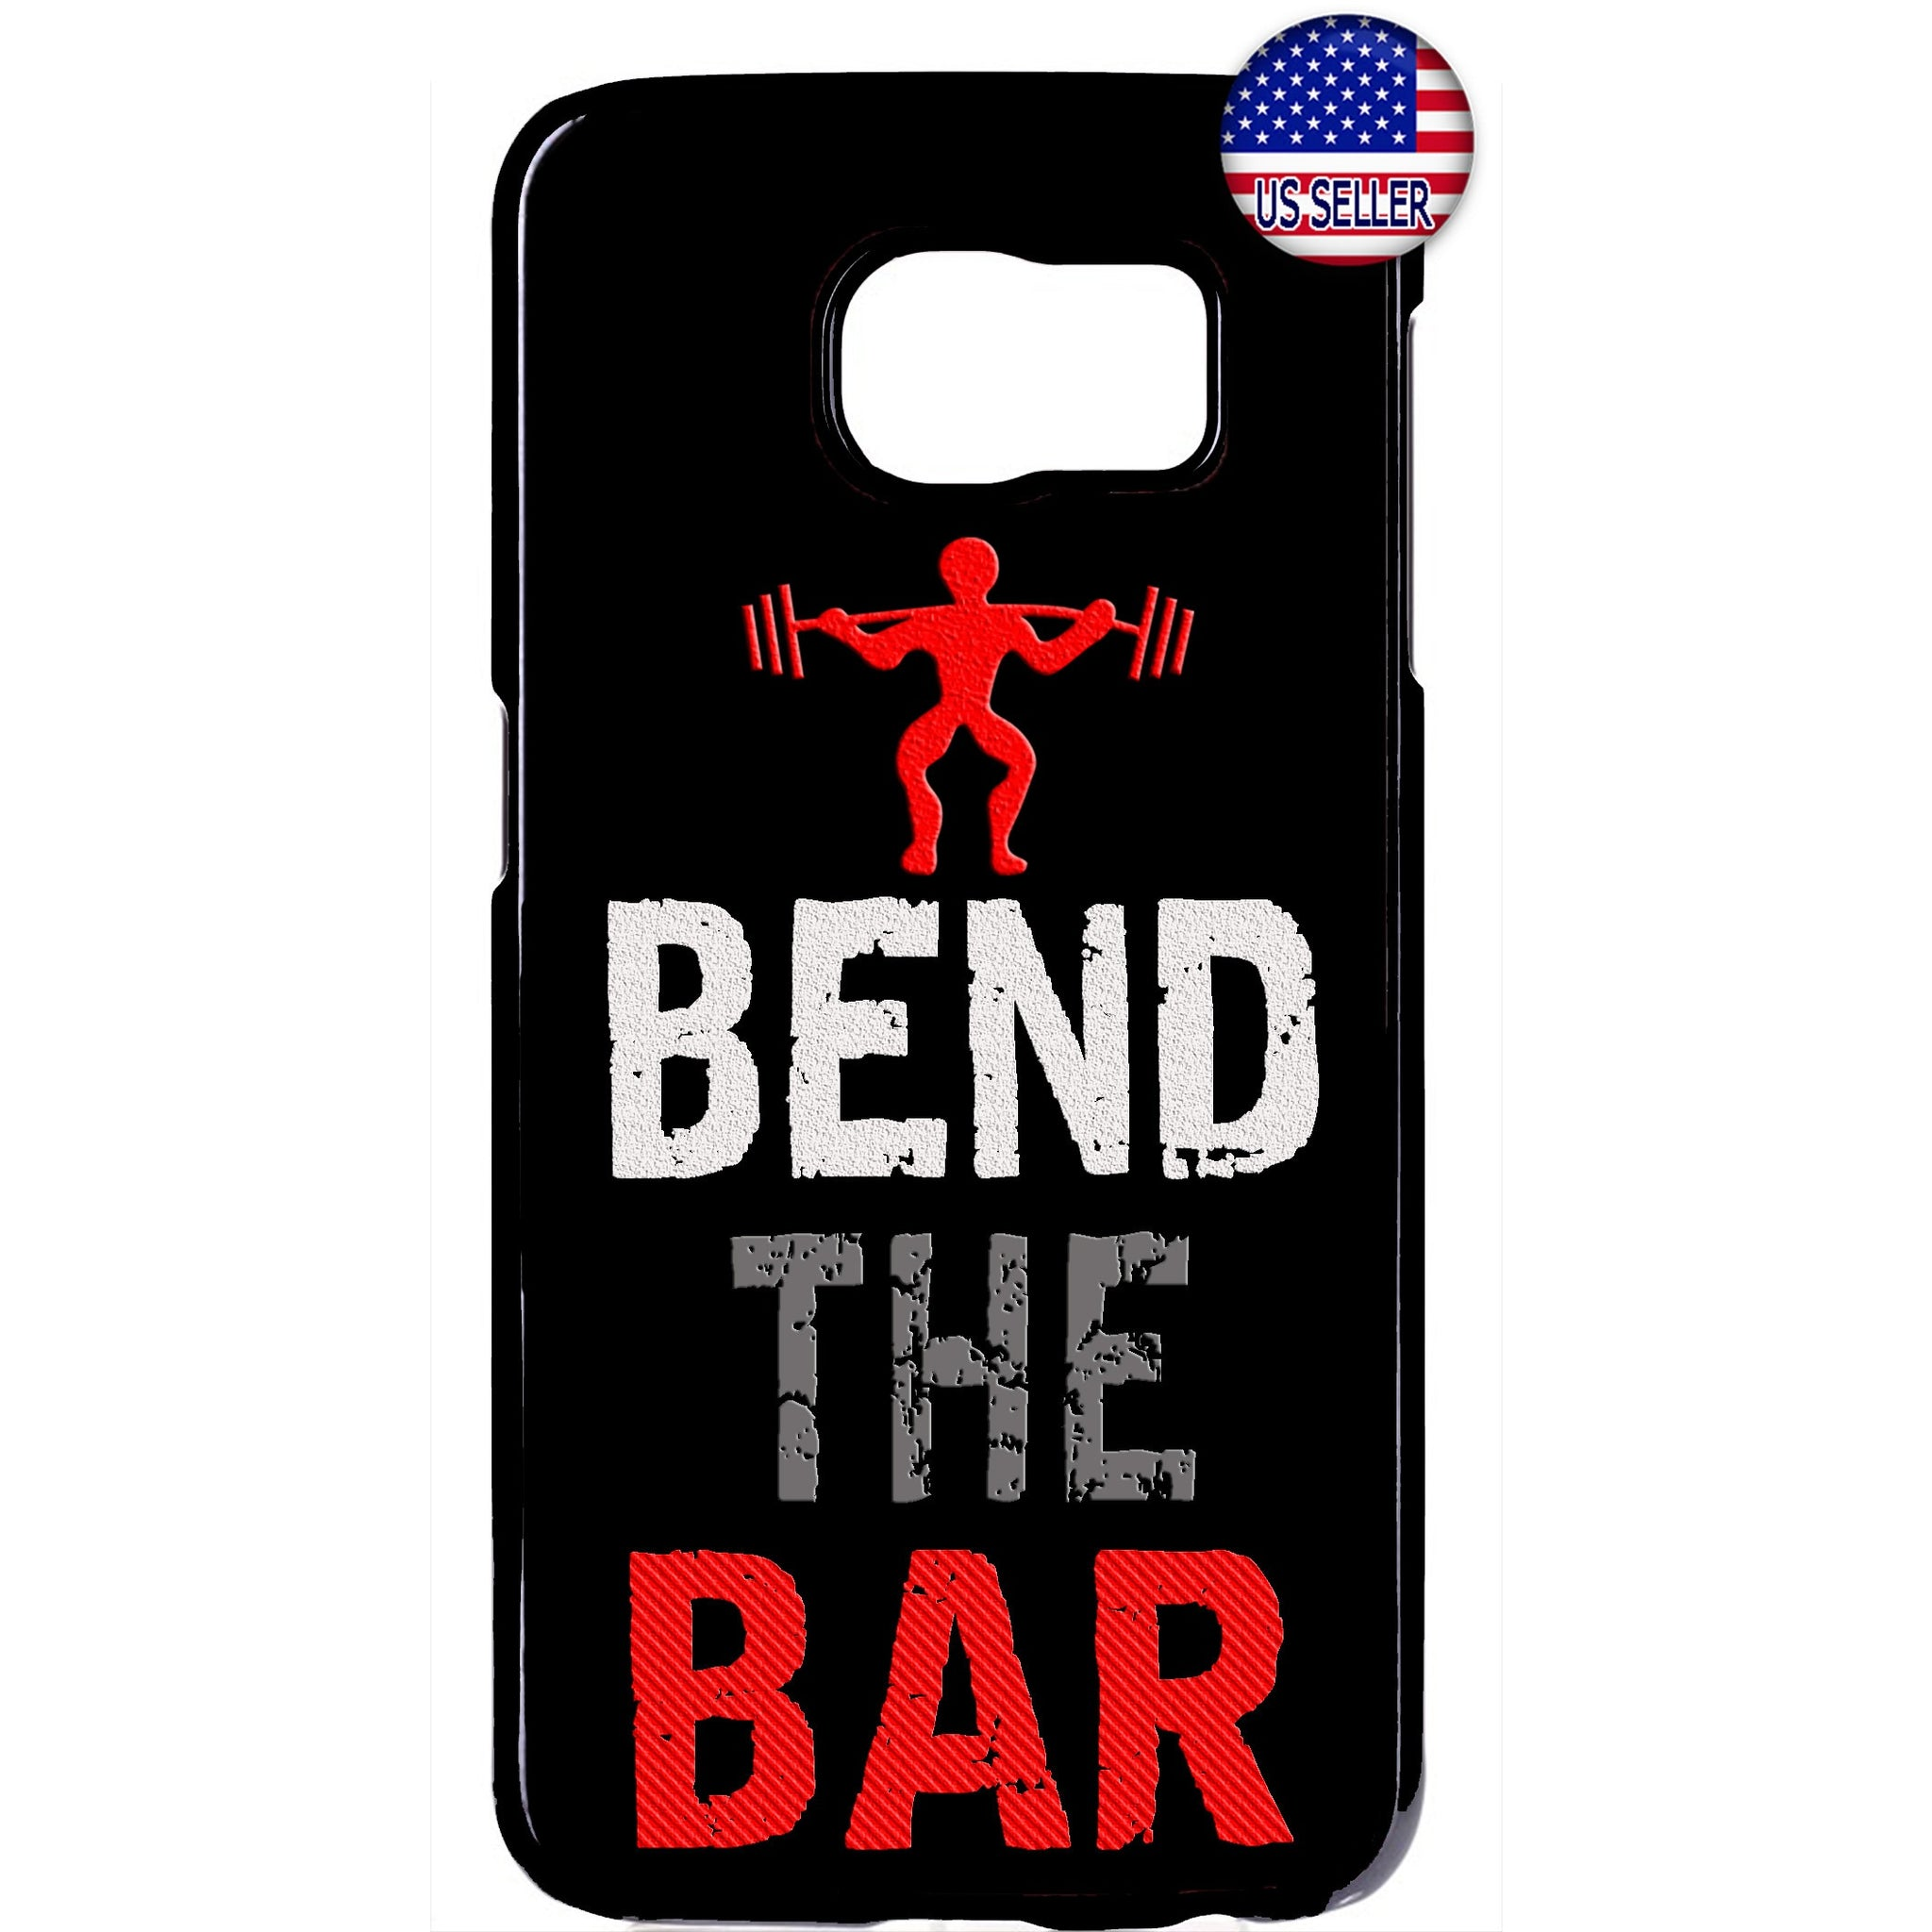 Bend The Bar Workout Gym Rubber Case Cover For Samsung Galaxy Note